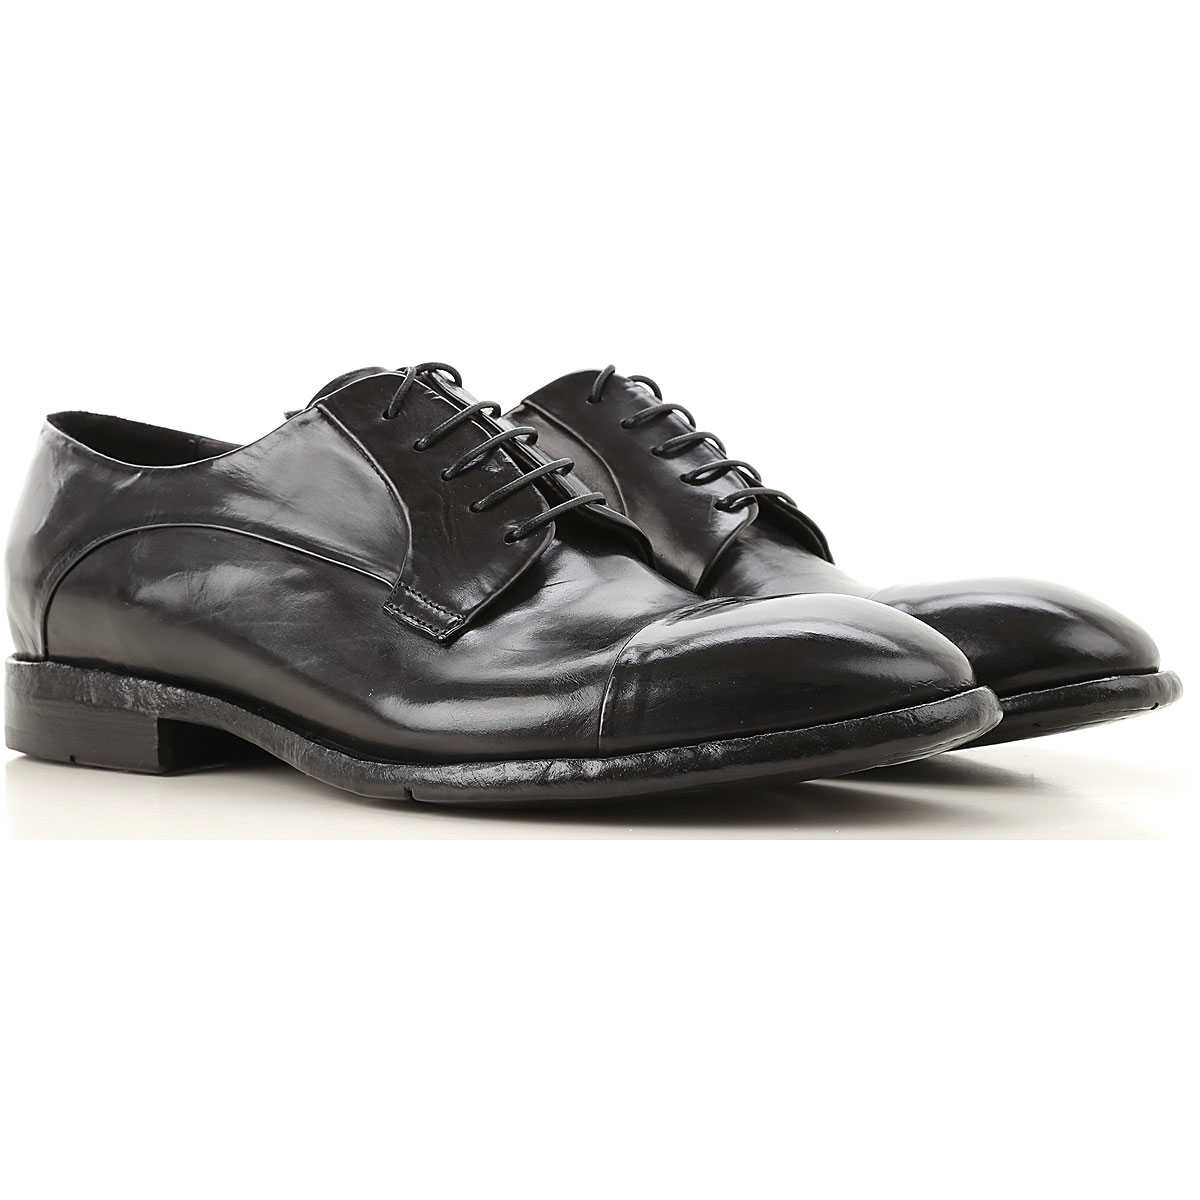 Lemargo Lace Up Shoes for Men Oxfords Derbies and Brogues On Sale SE - GOOFASH